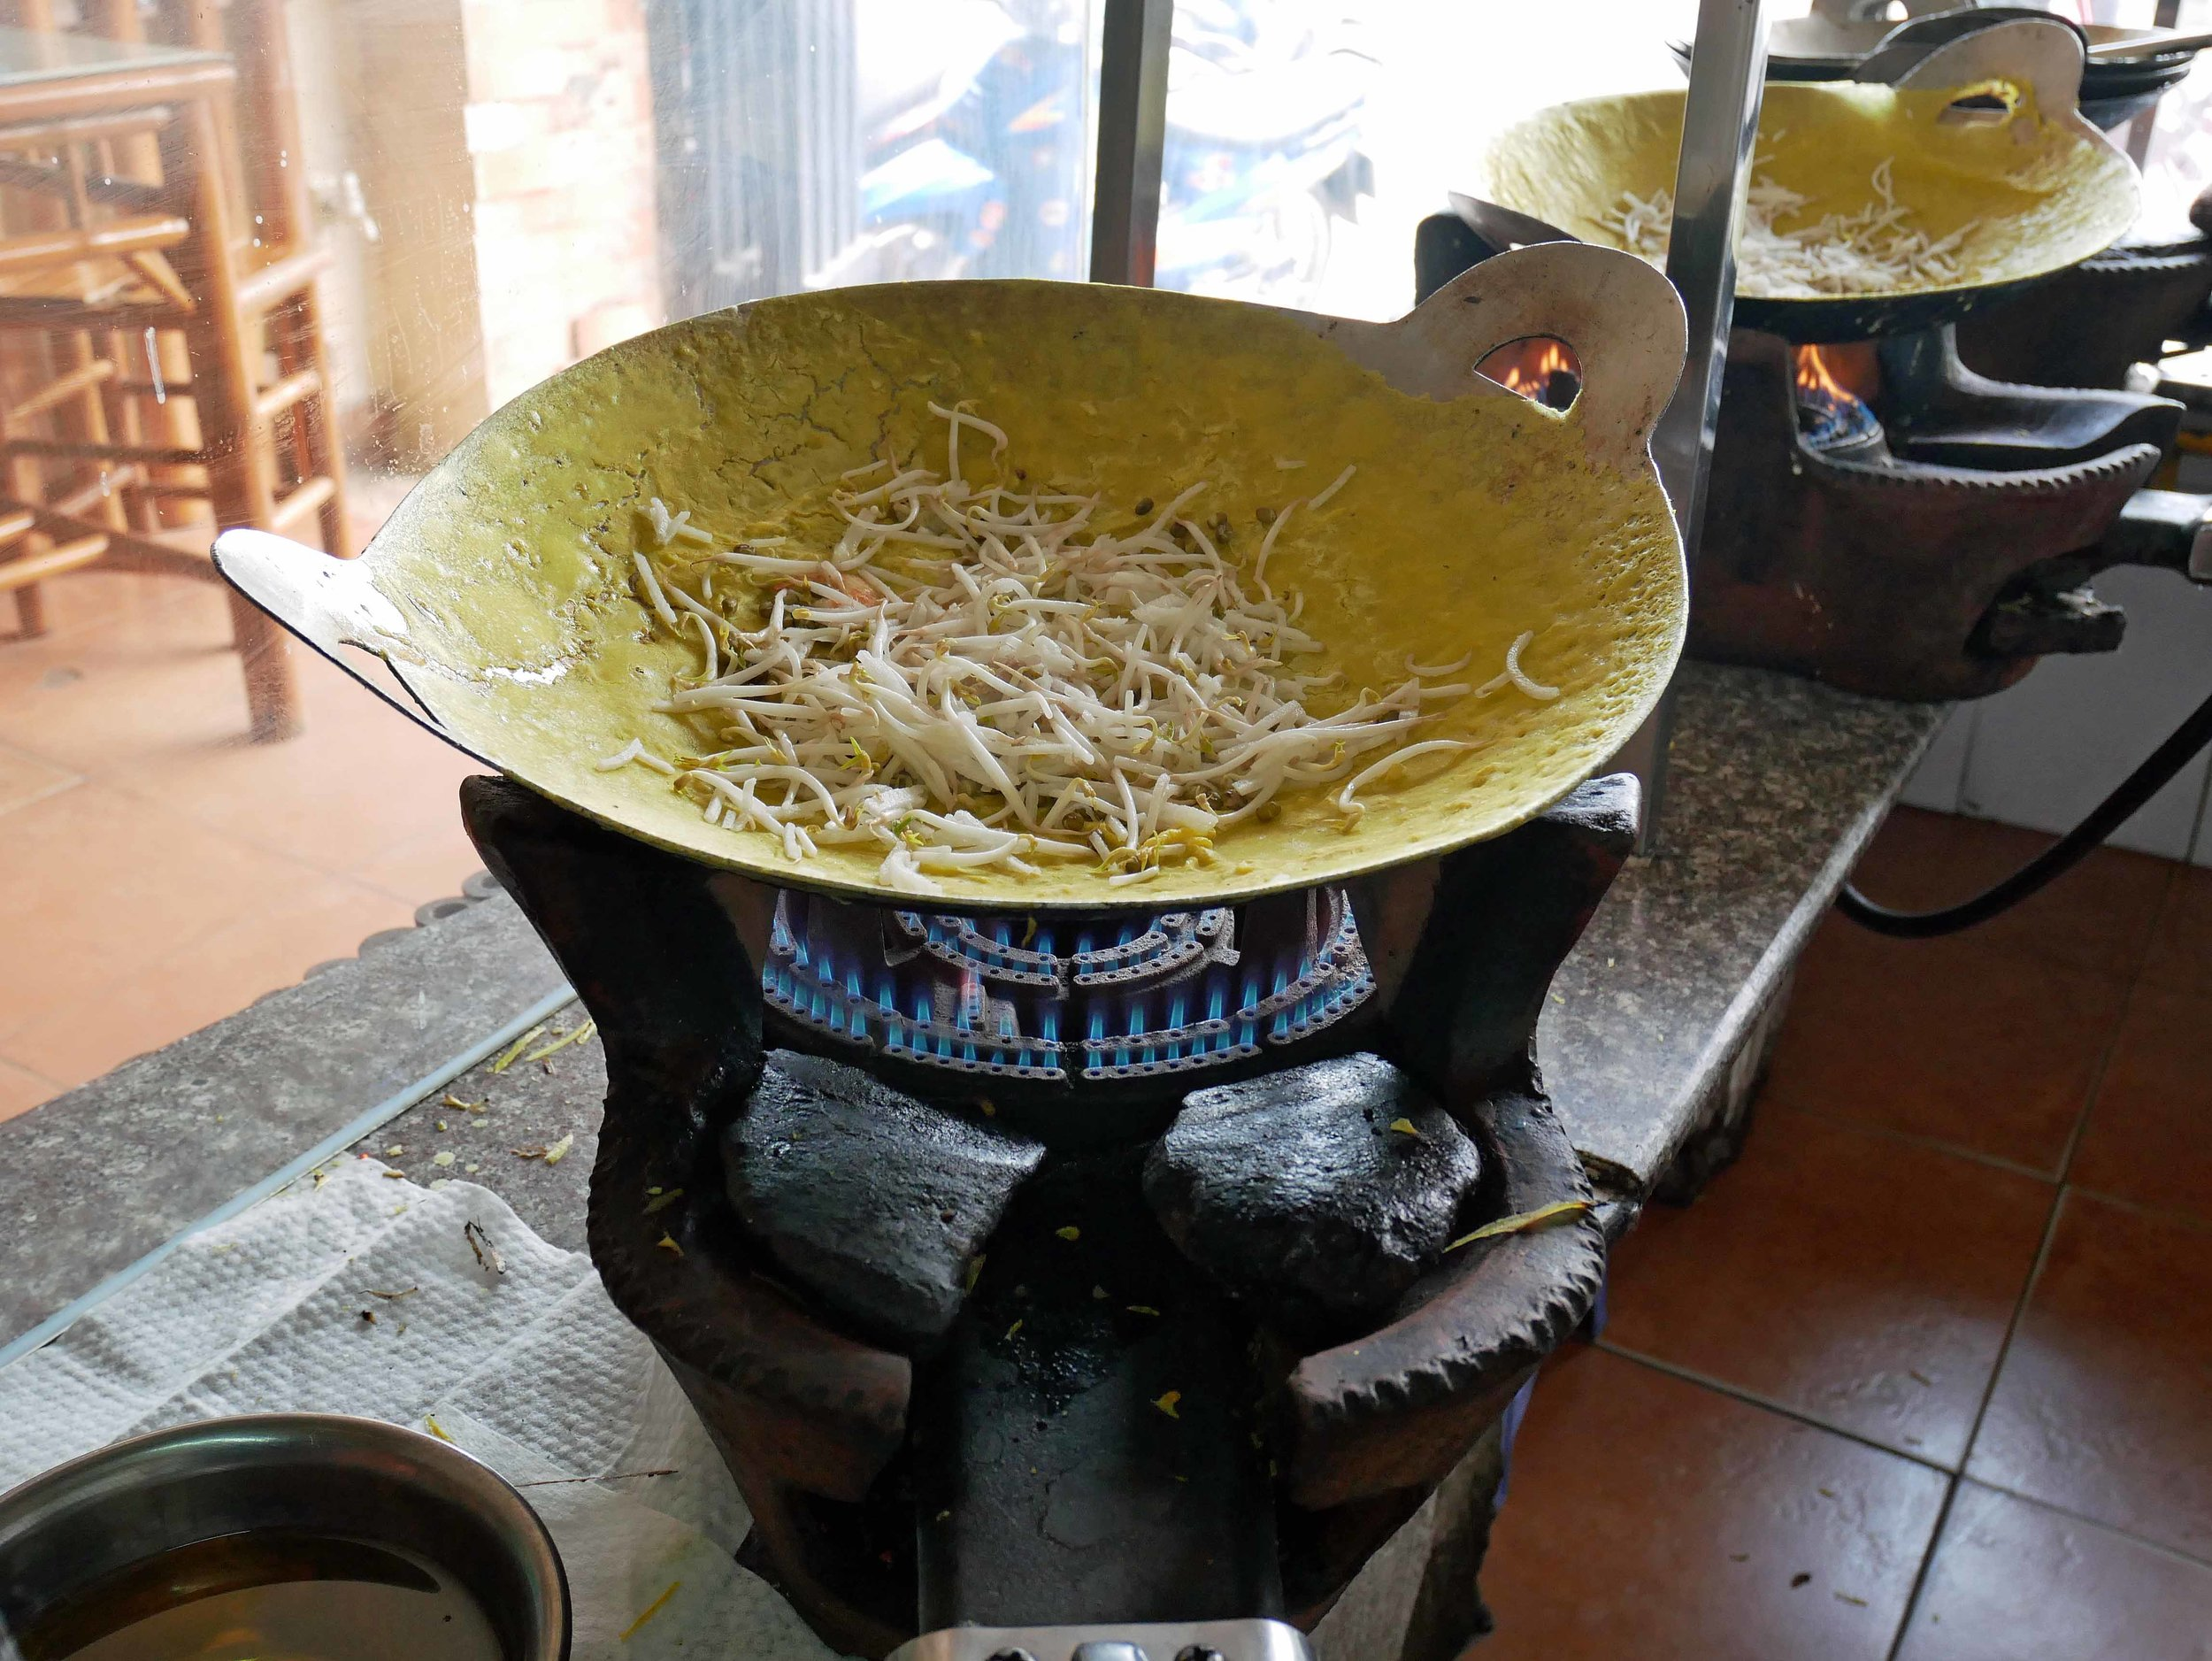 To make Banh Xeo, our lunch that day, the cook spreads rice batter very thin in a wok before adding shrimp, pork and bean sprouts.